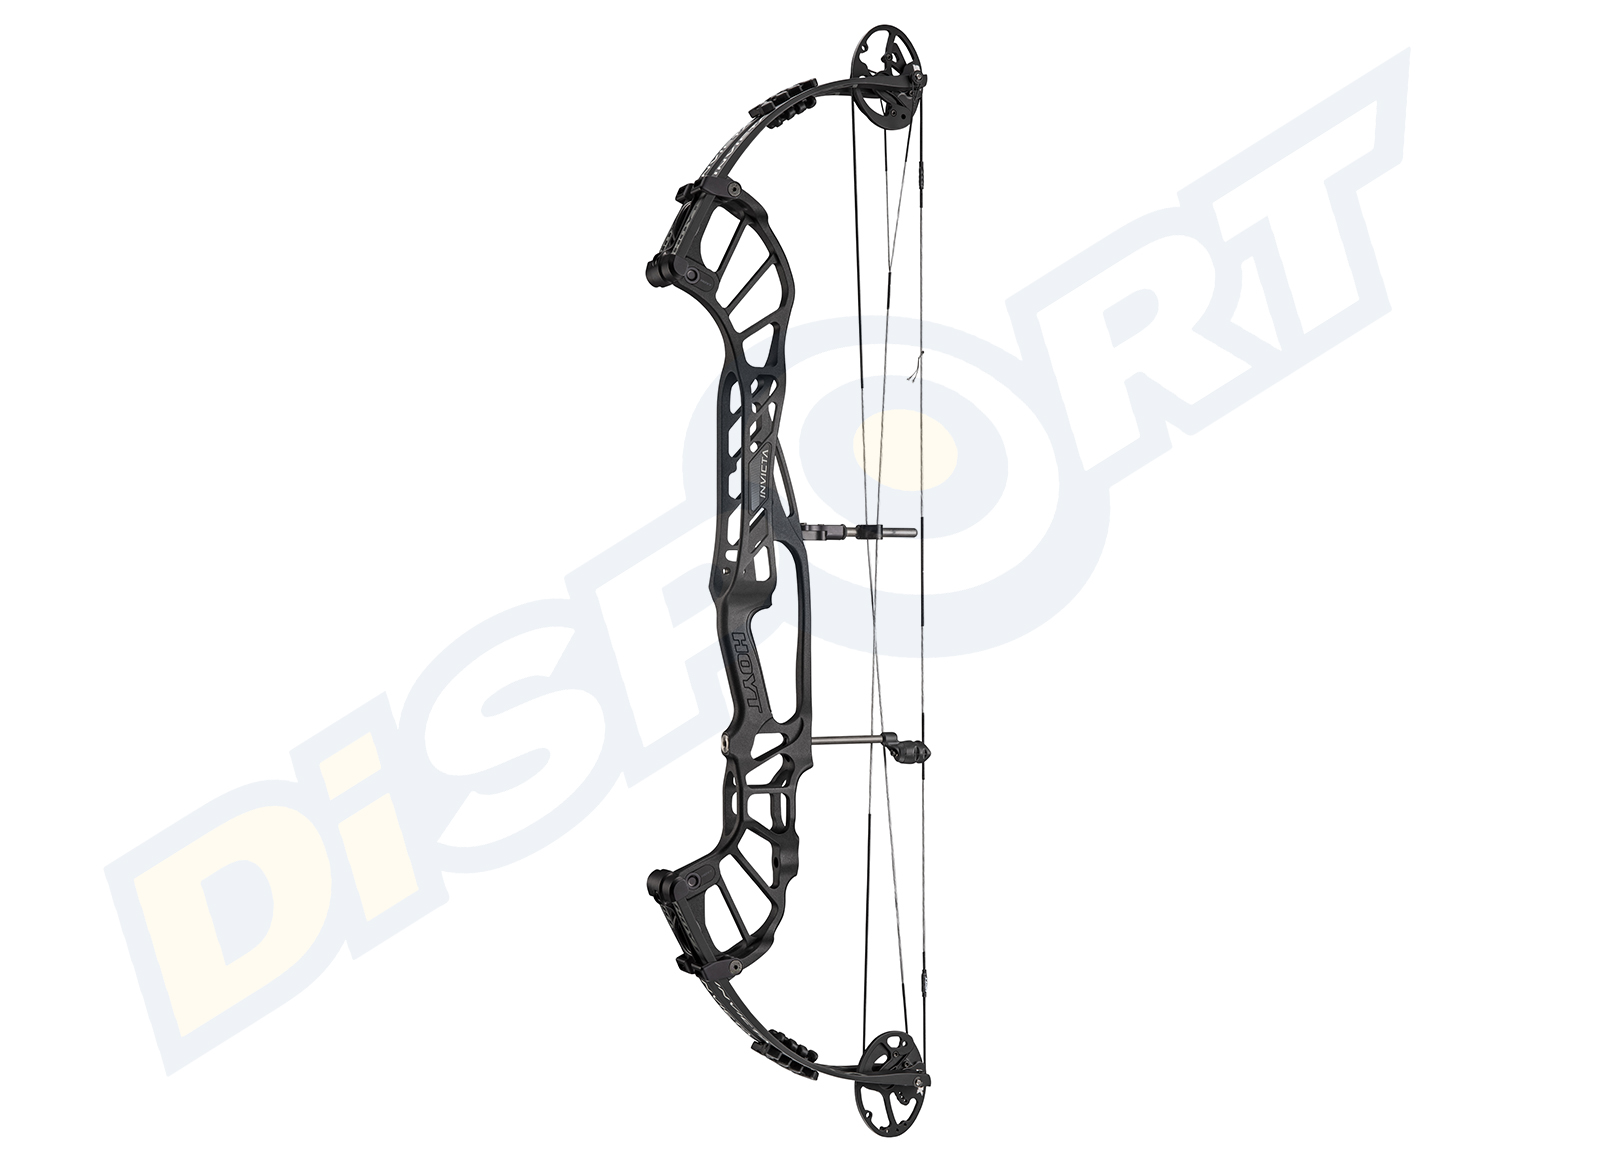 HOYT COMPOUND INVICTA 37 SVX 2020 BLACKOUT